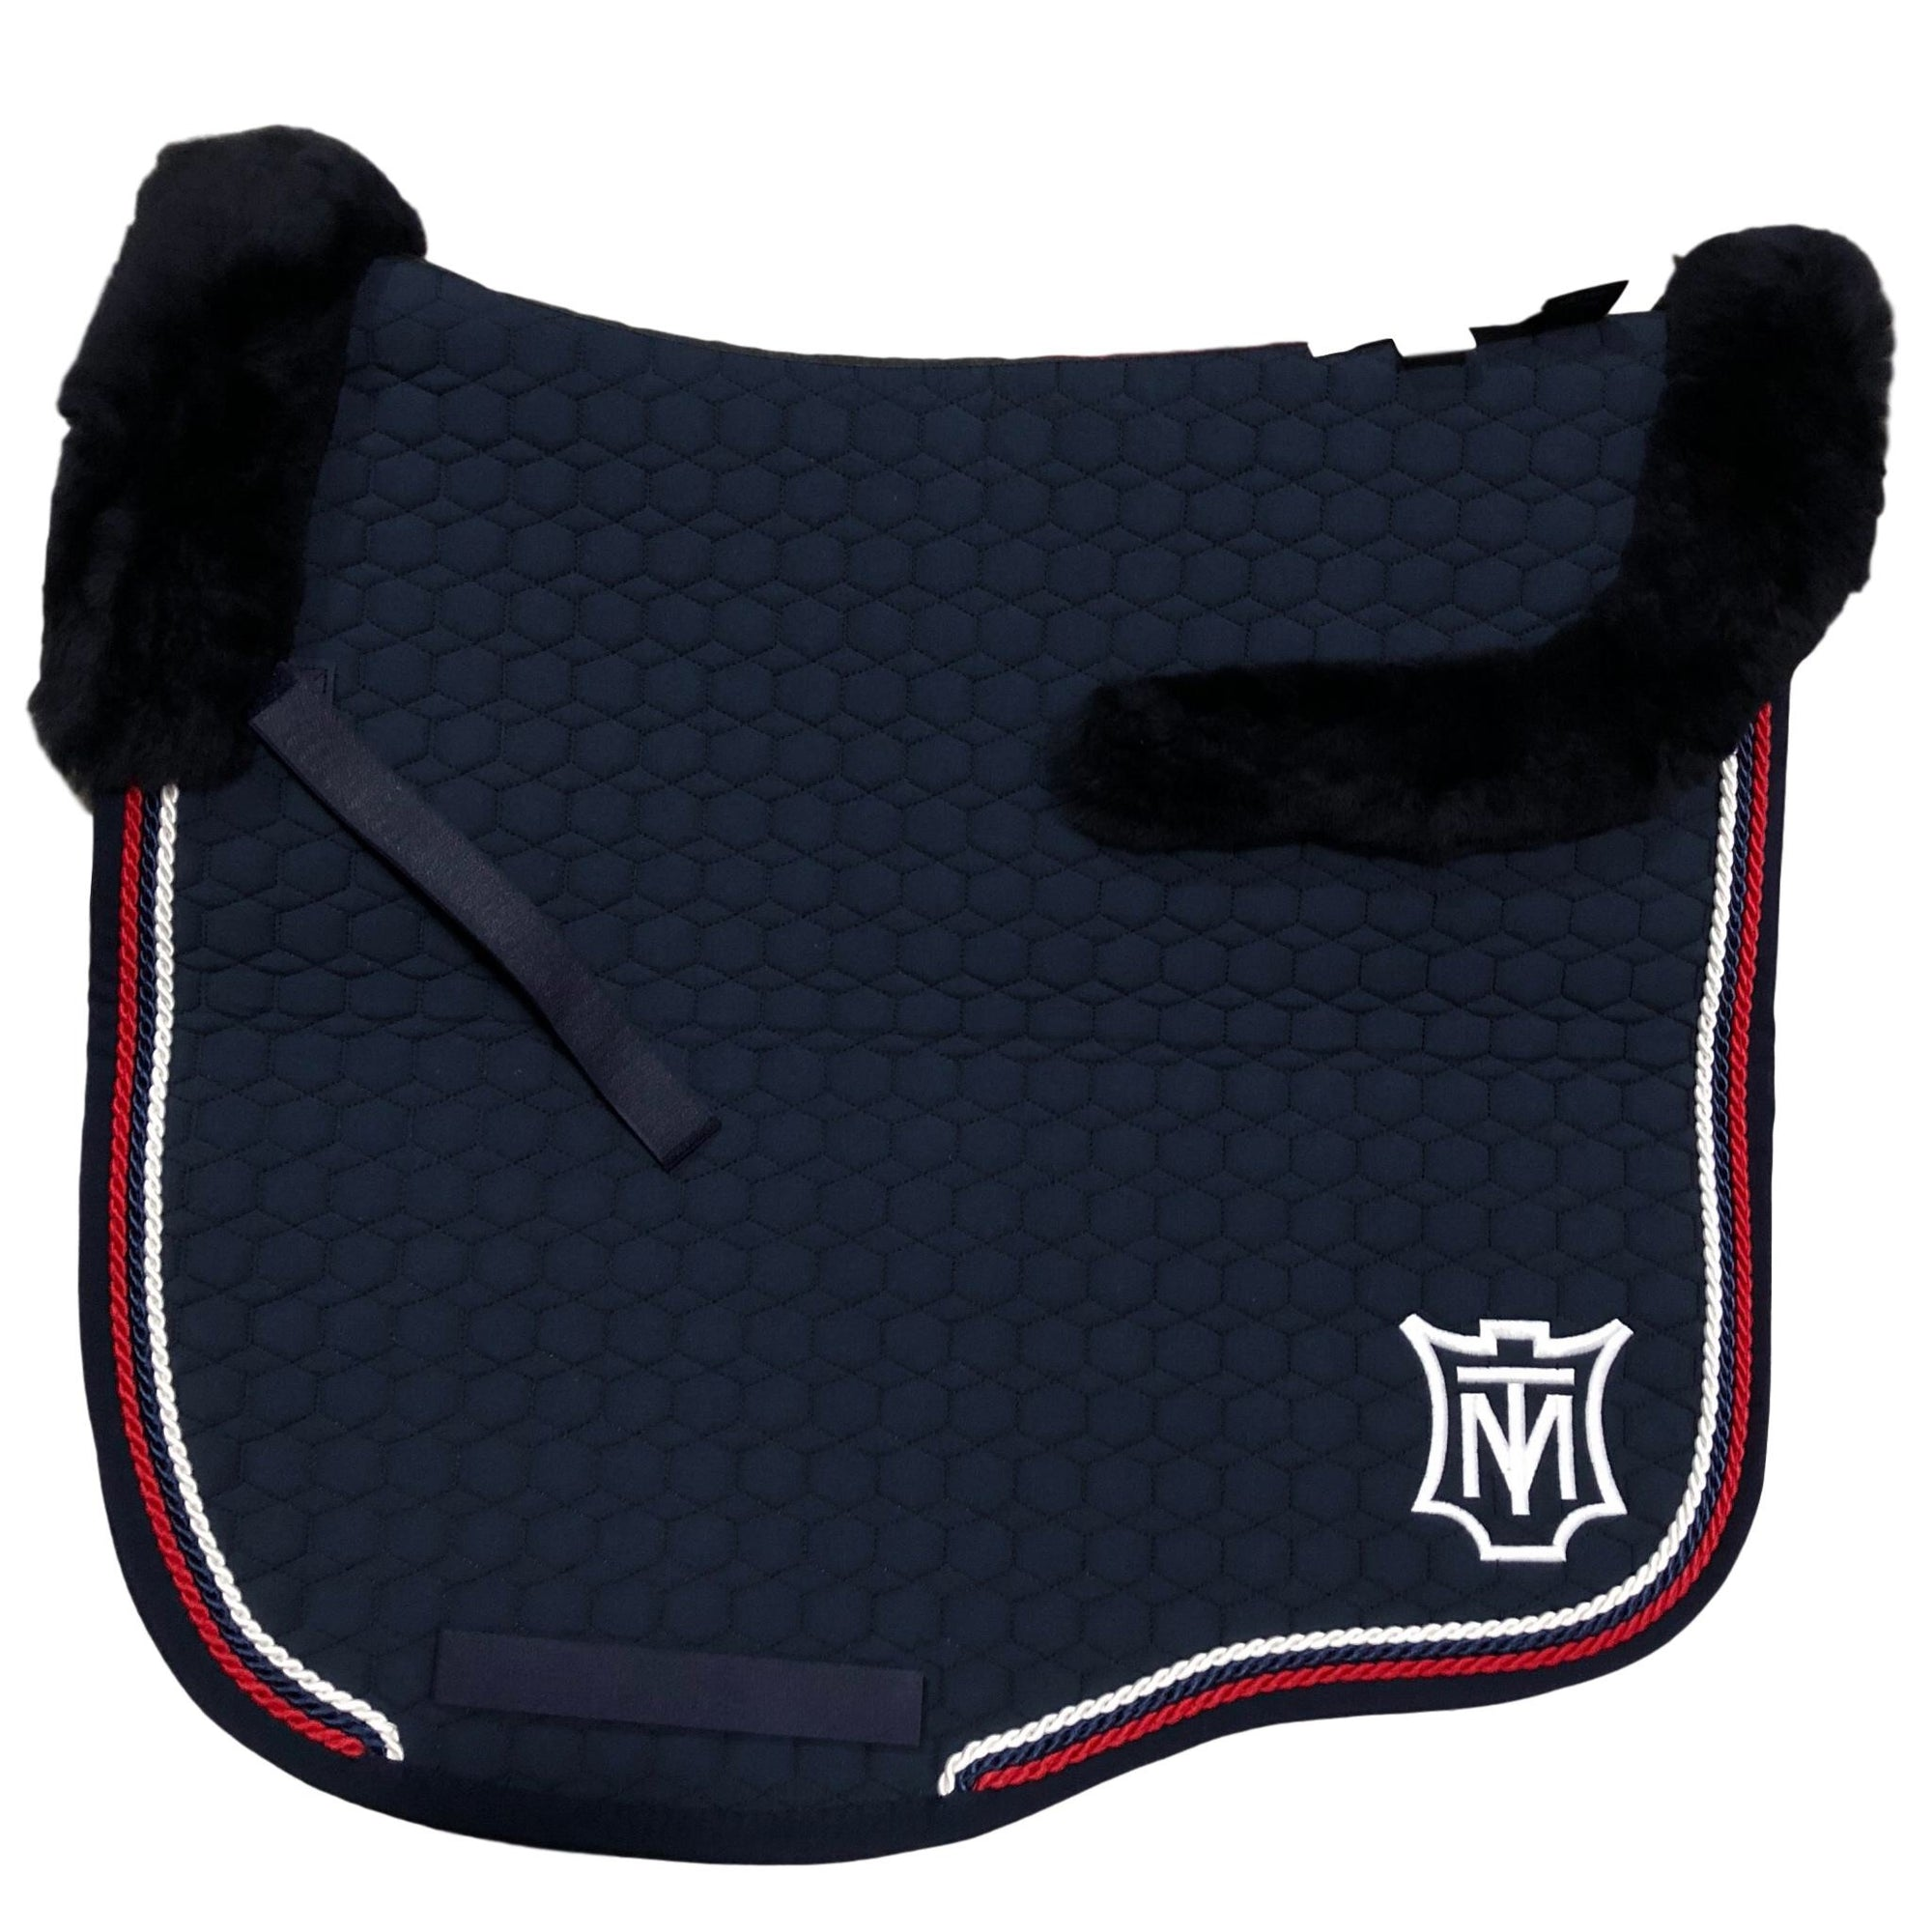 E.A Mattes Instock - L Size/Top Fleece - Navy, Red & White - Hufglocken